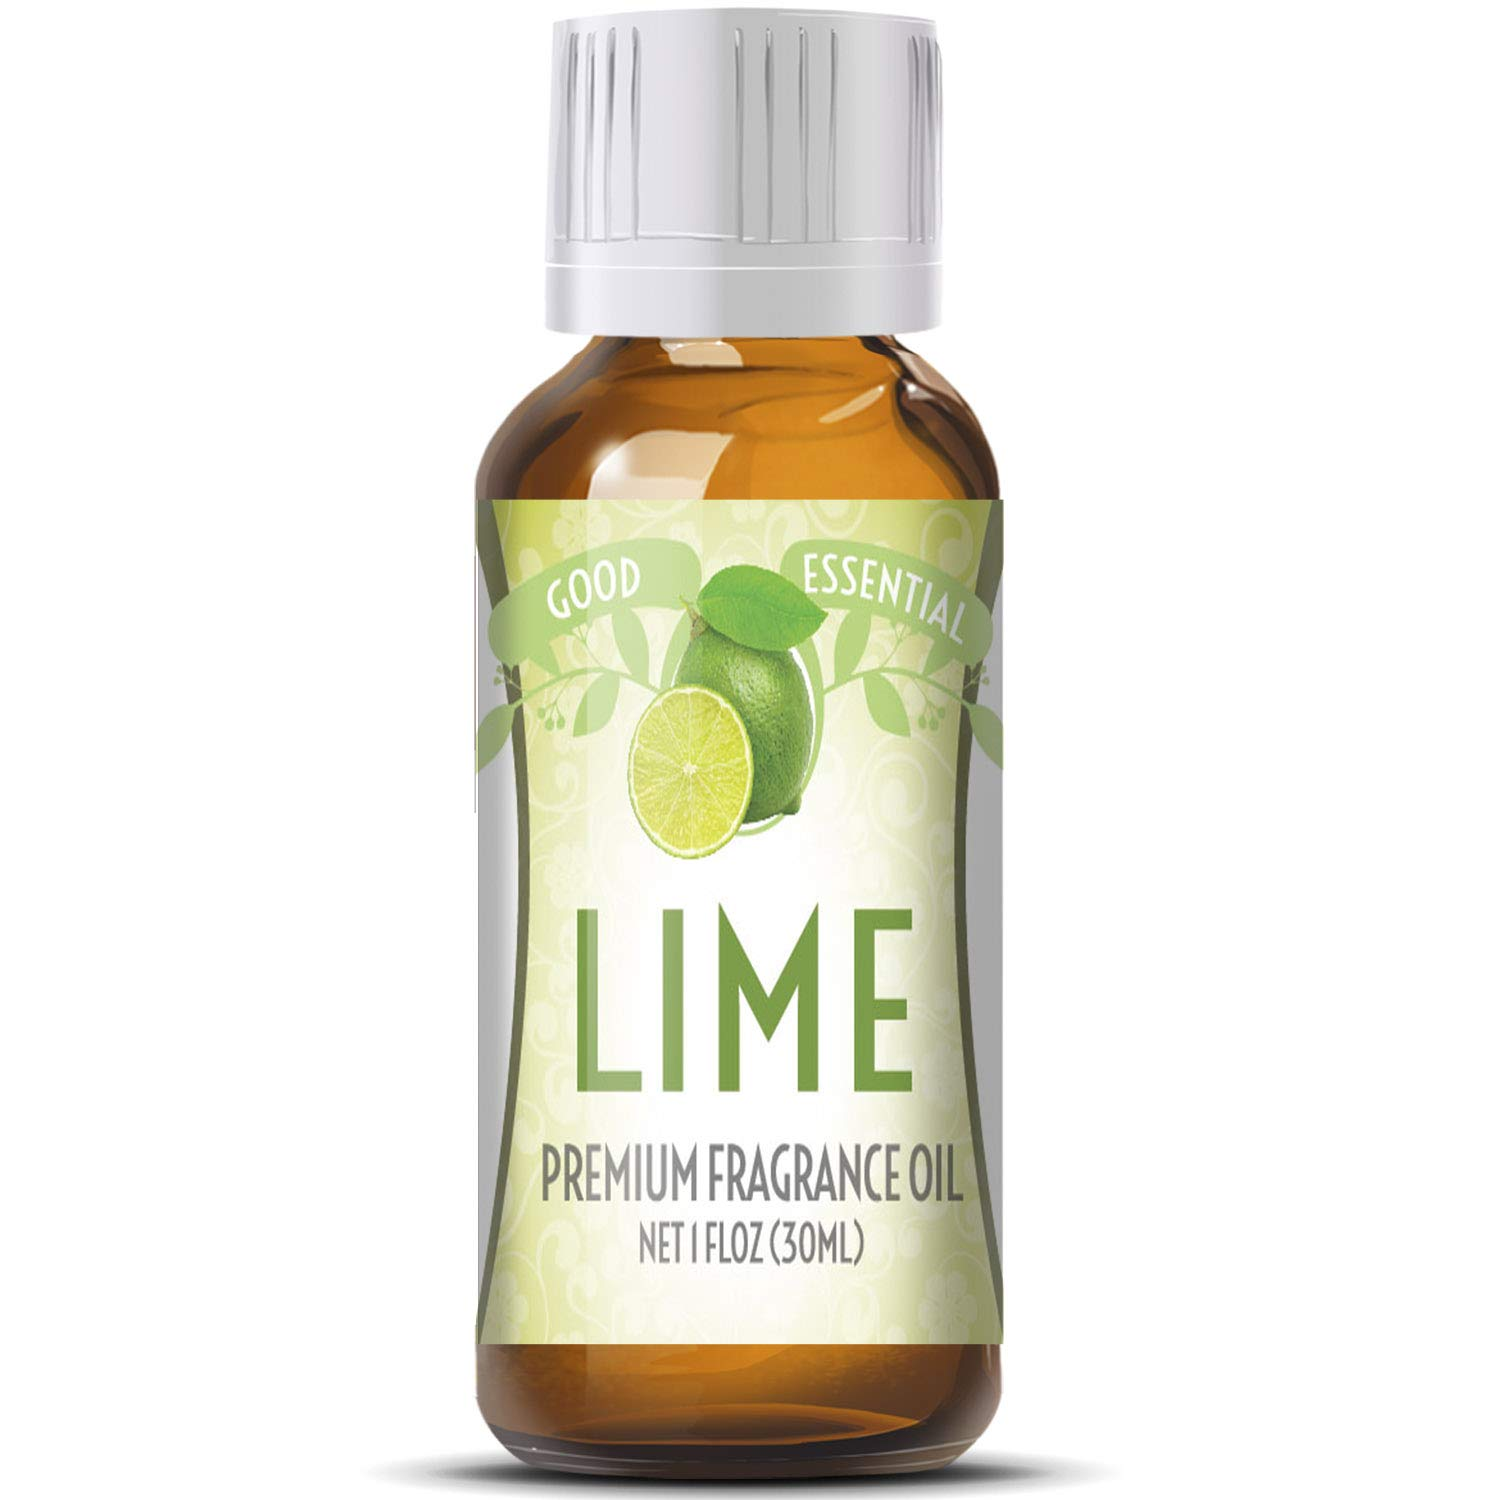 Lime Scented Oil by Good Essential (Huge 1oz Bottle - Premium Grade Fragrance Oil) - Perfect for Aromatherapy, Soaps, Candles, Slime, Lotions, More!